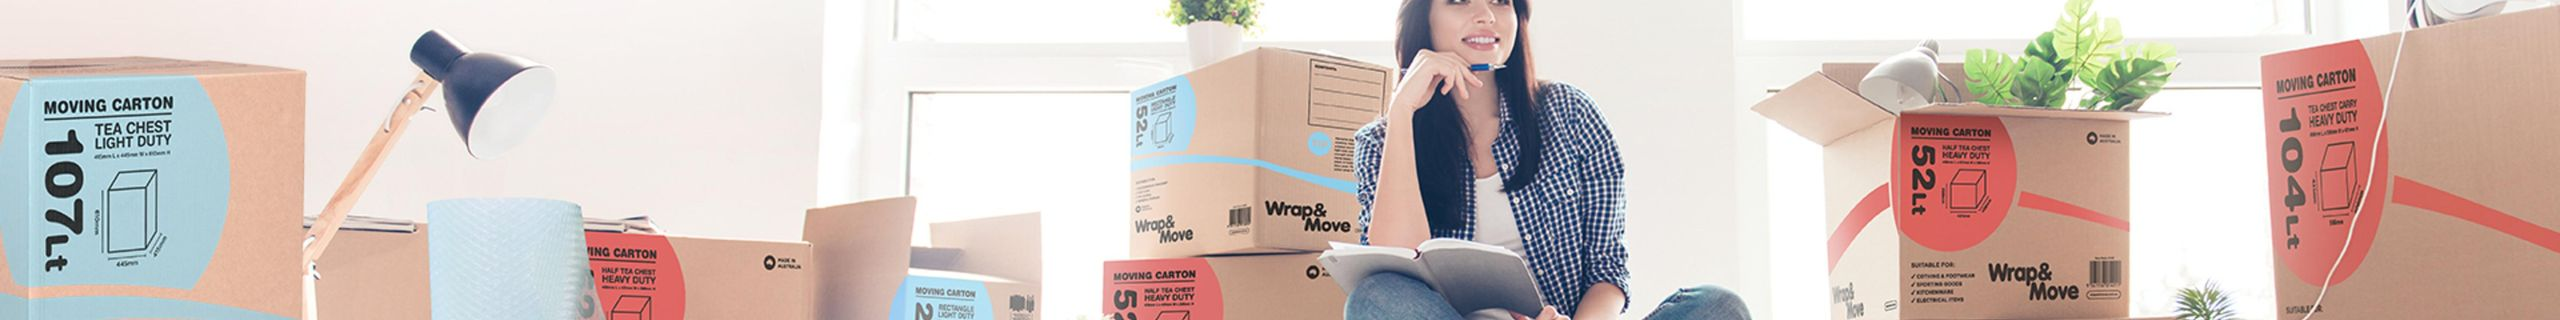 Woman sitting on the floor in a room with a notepad and pen, surrounded by moving boxes